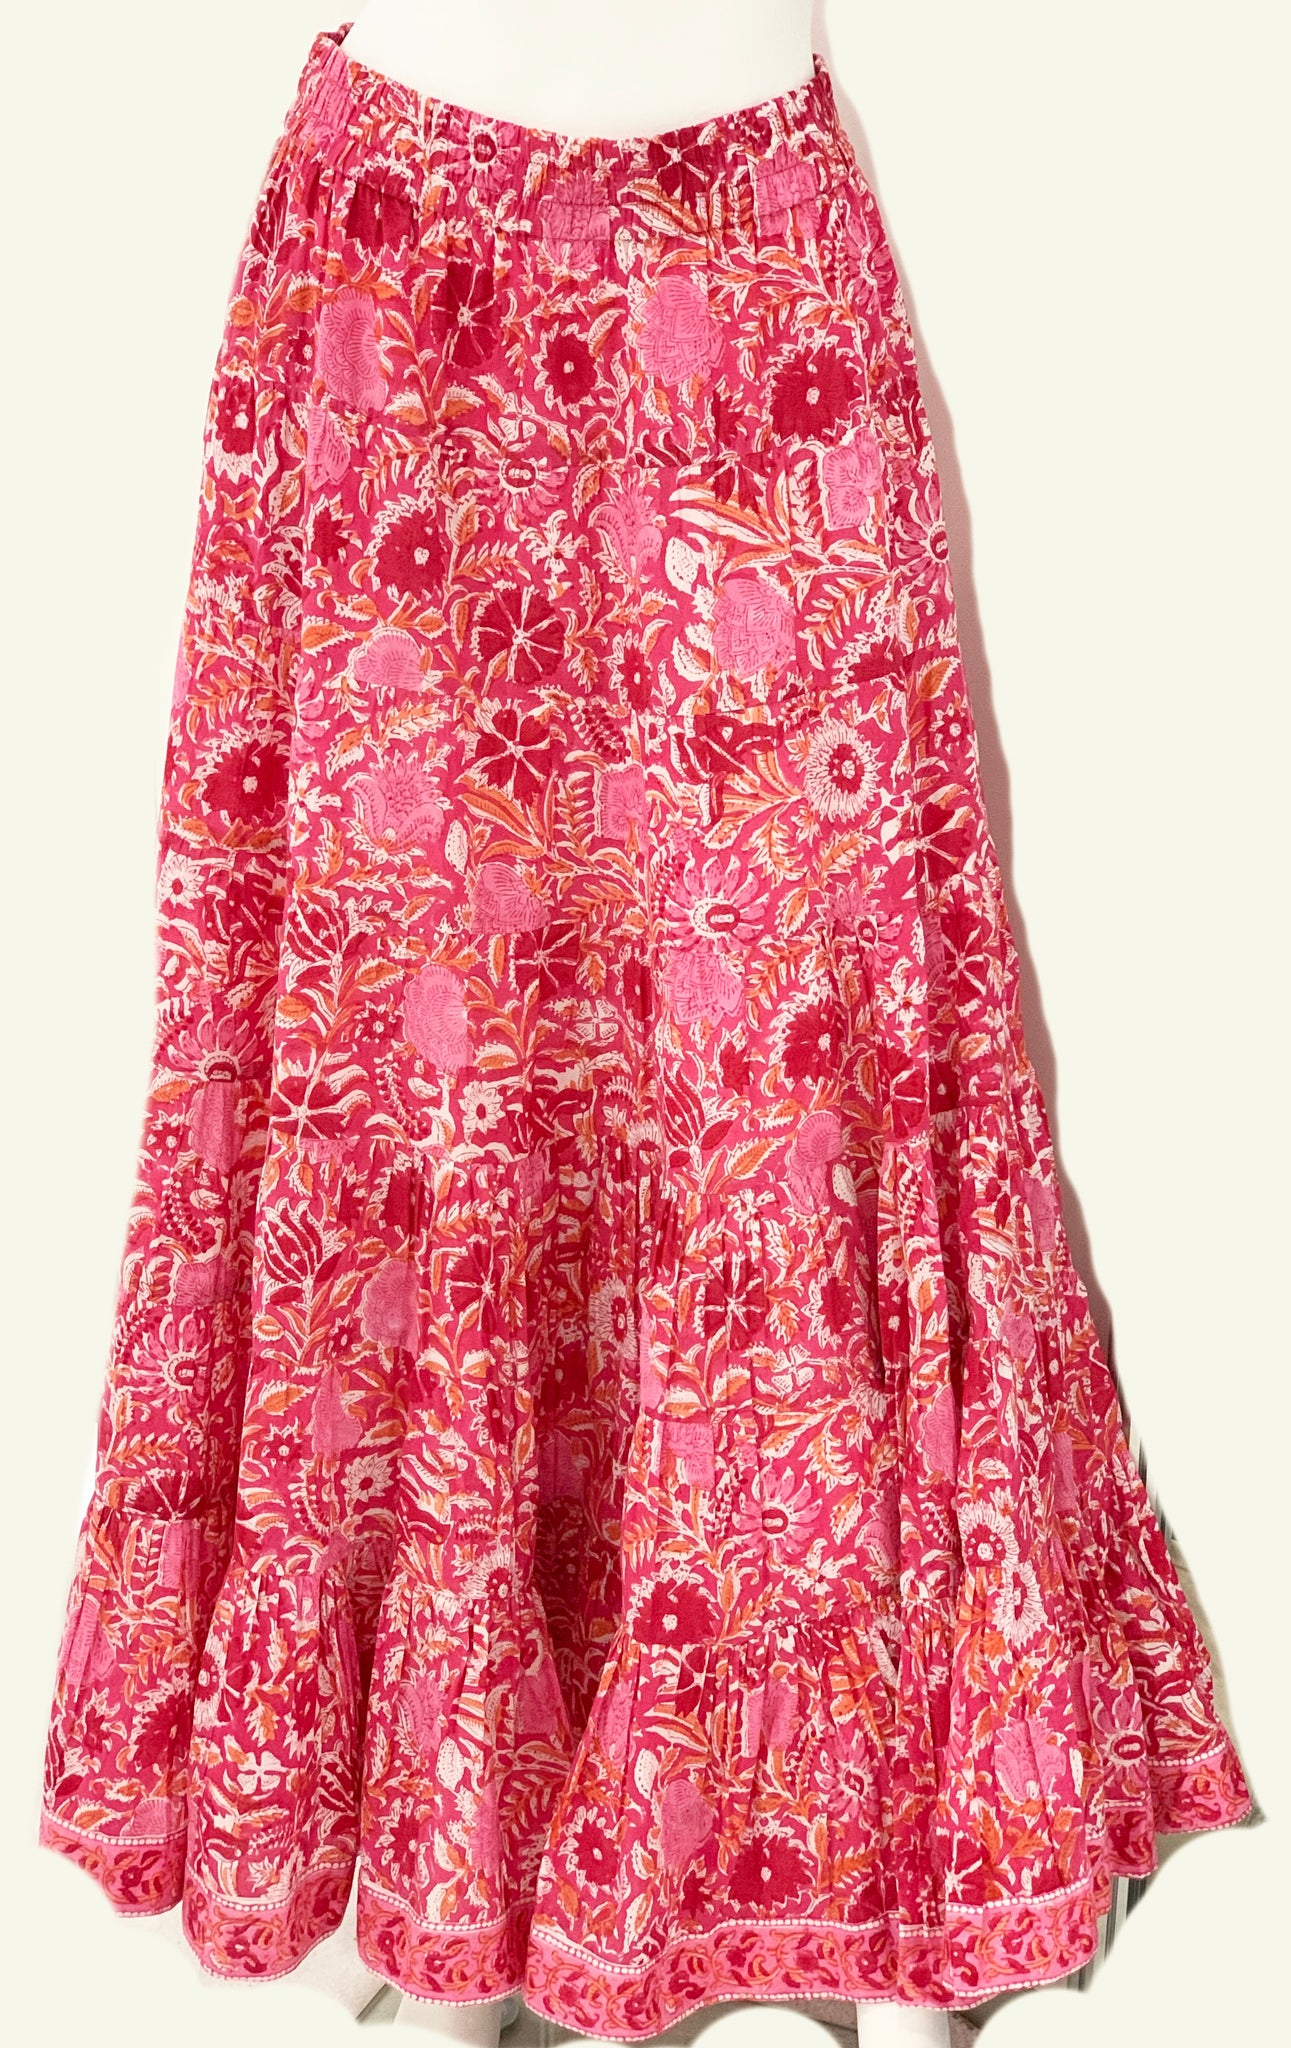 Jaipur Maxi Skirt in Pink and Orange Floral Block Print